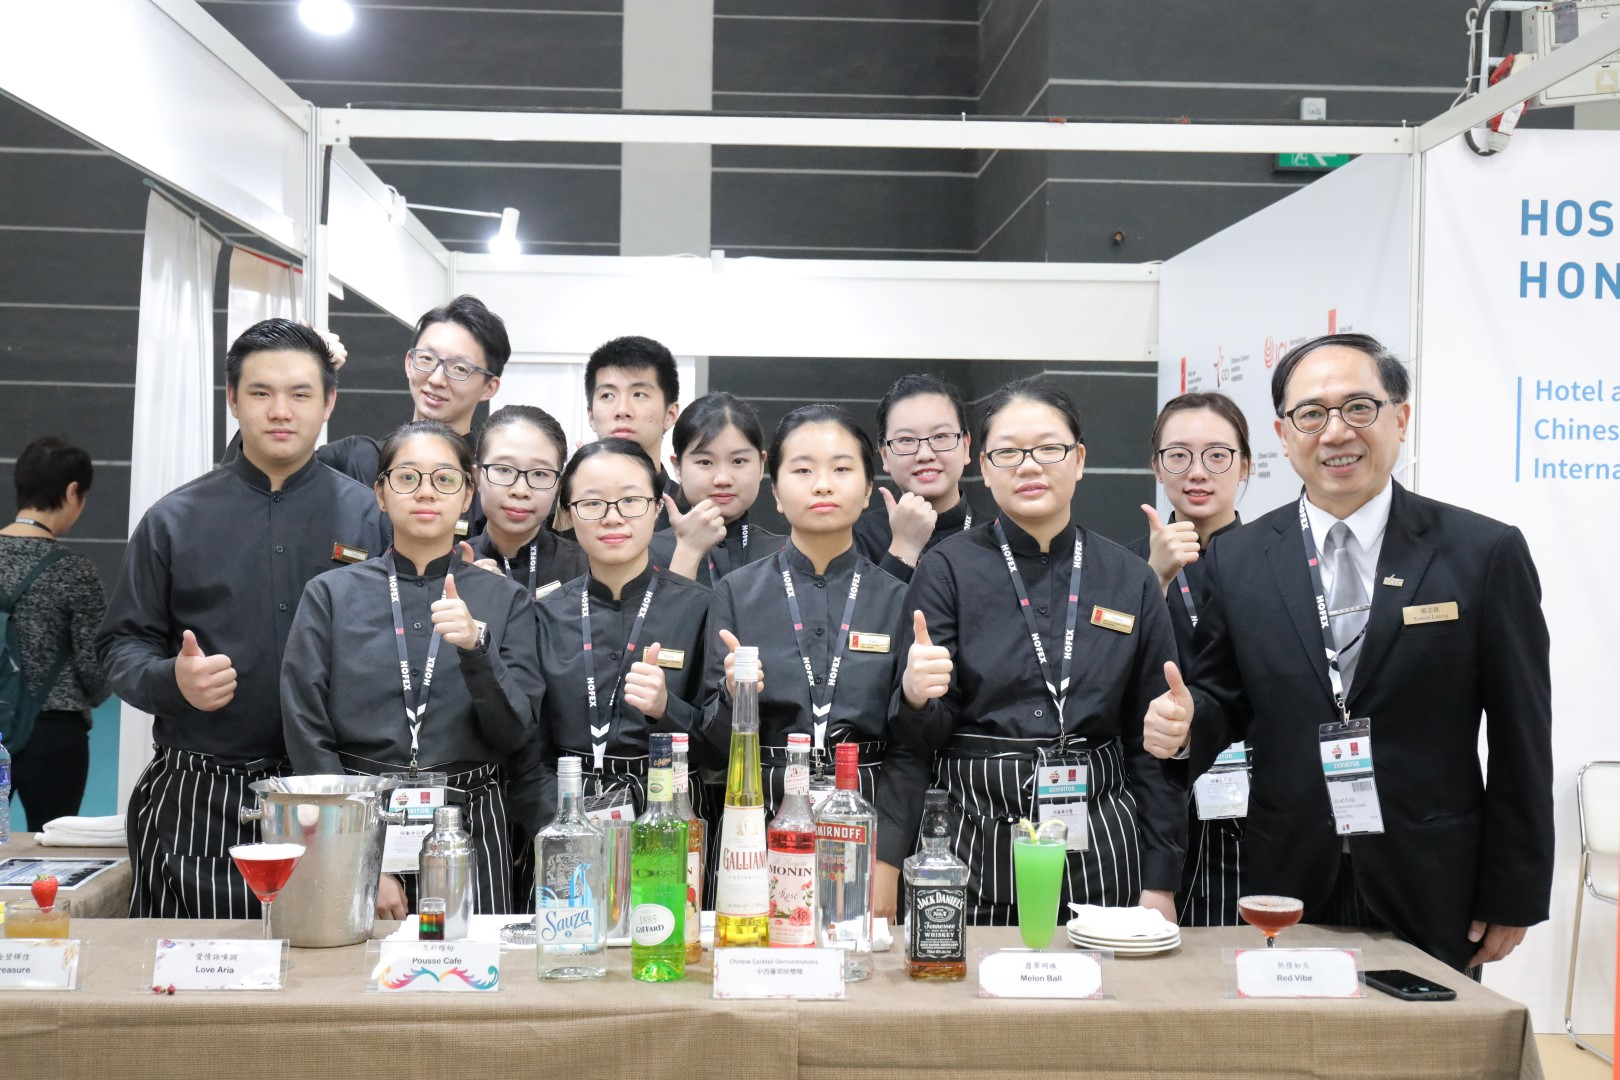 Students of HTI/CCI/ICI participated greatly in HOFEX 2019